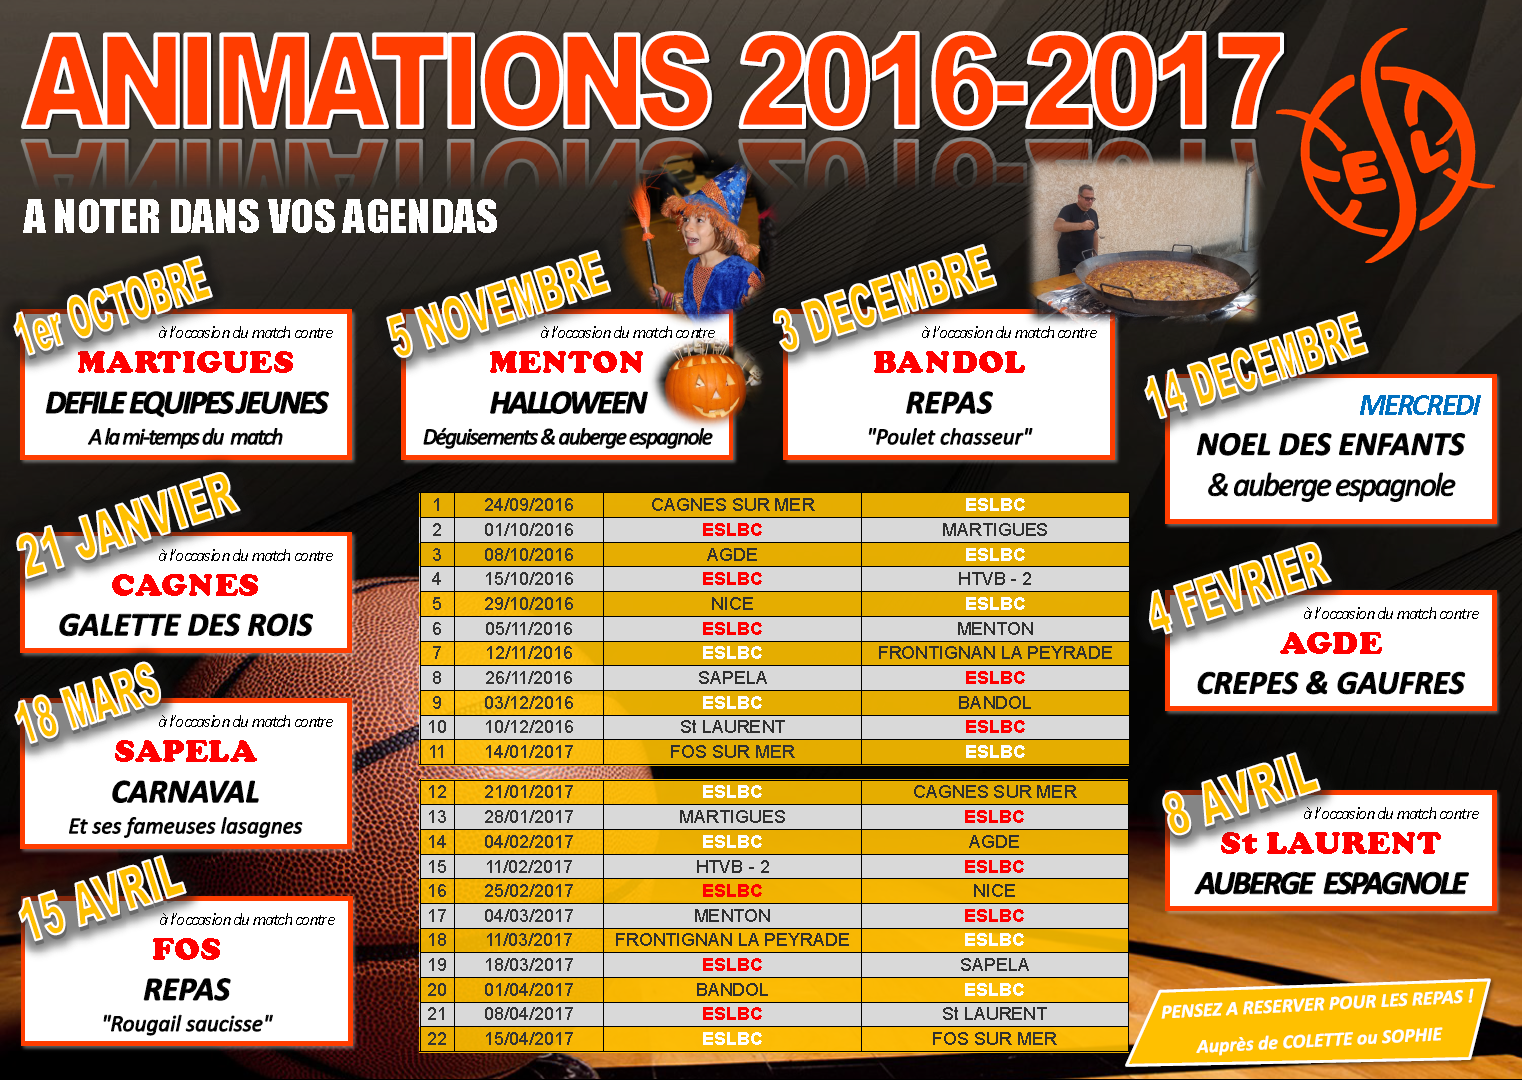 Animations de la saison 2016-2017